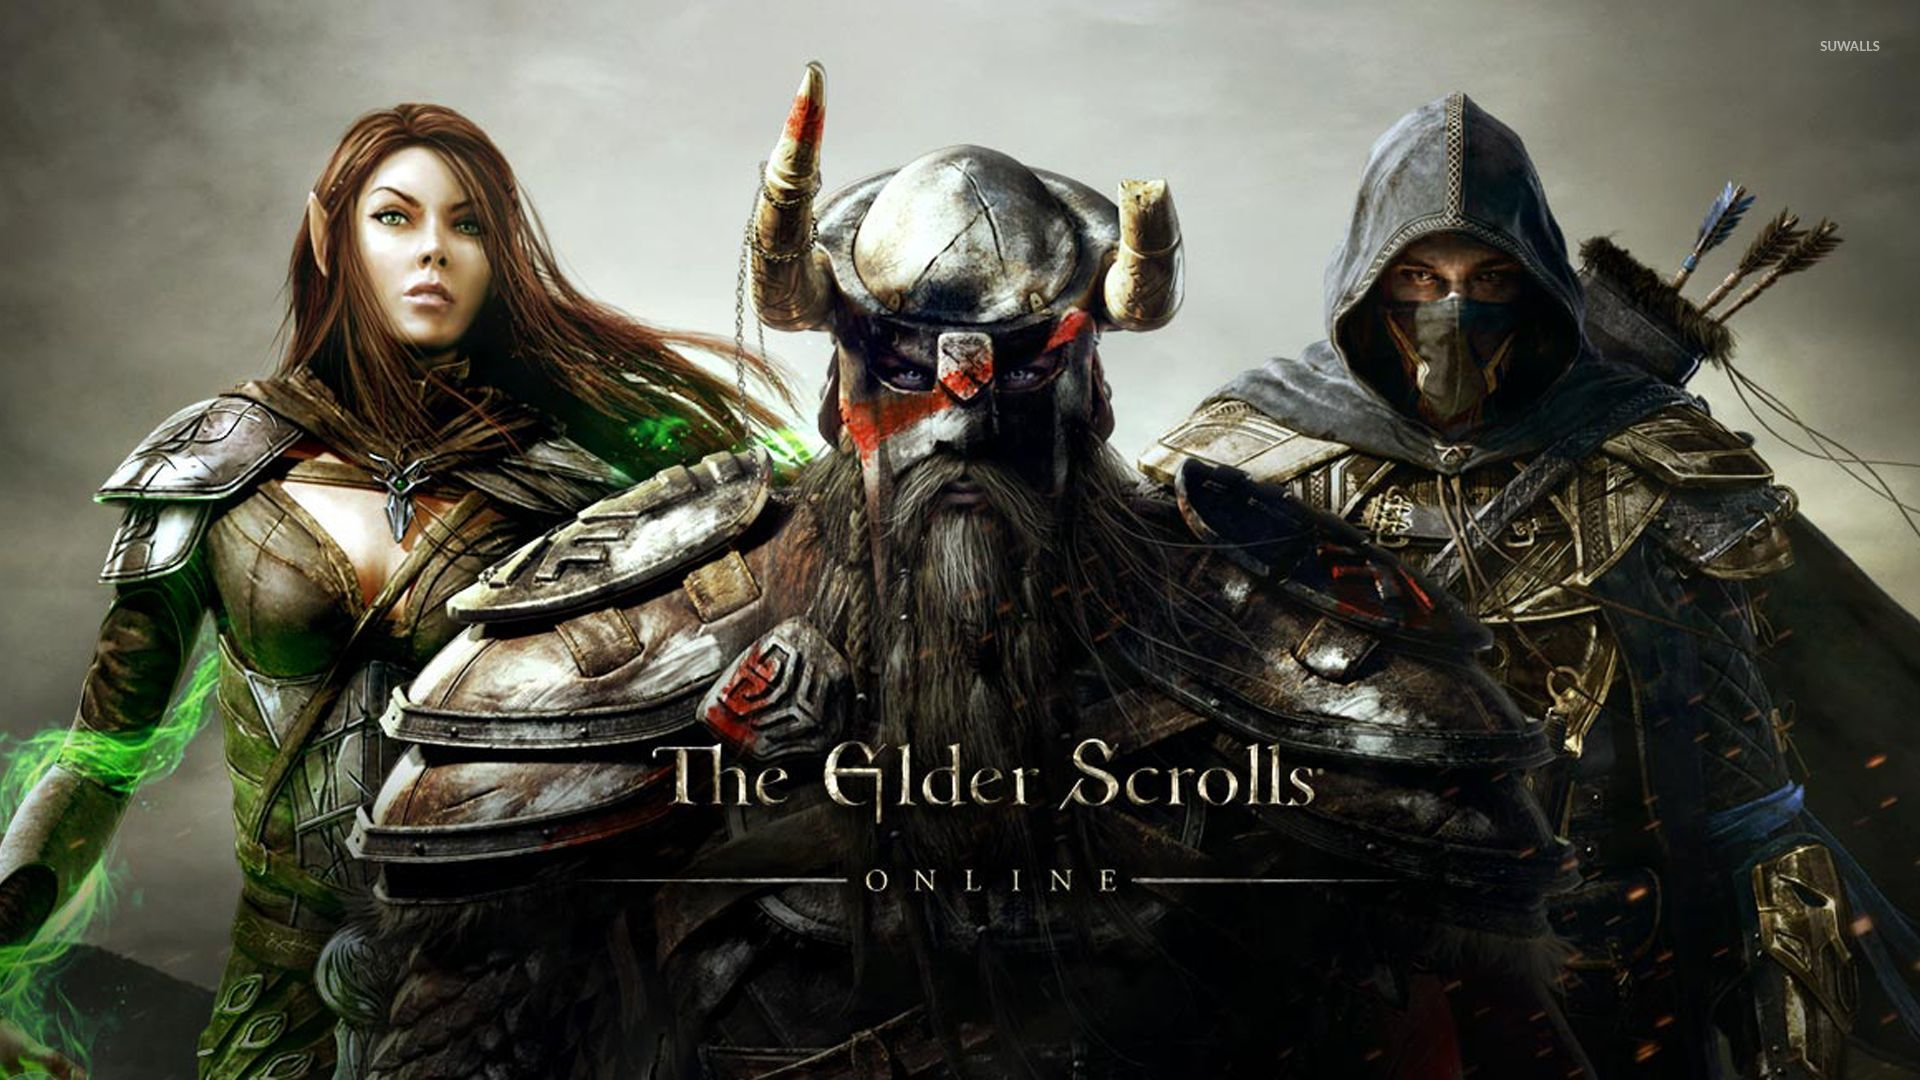 The Elder Scrolls Online Wallpaper Game Wallpapers 21633